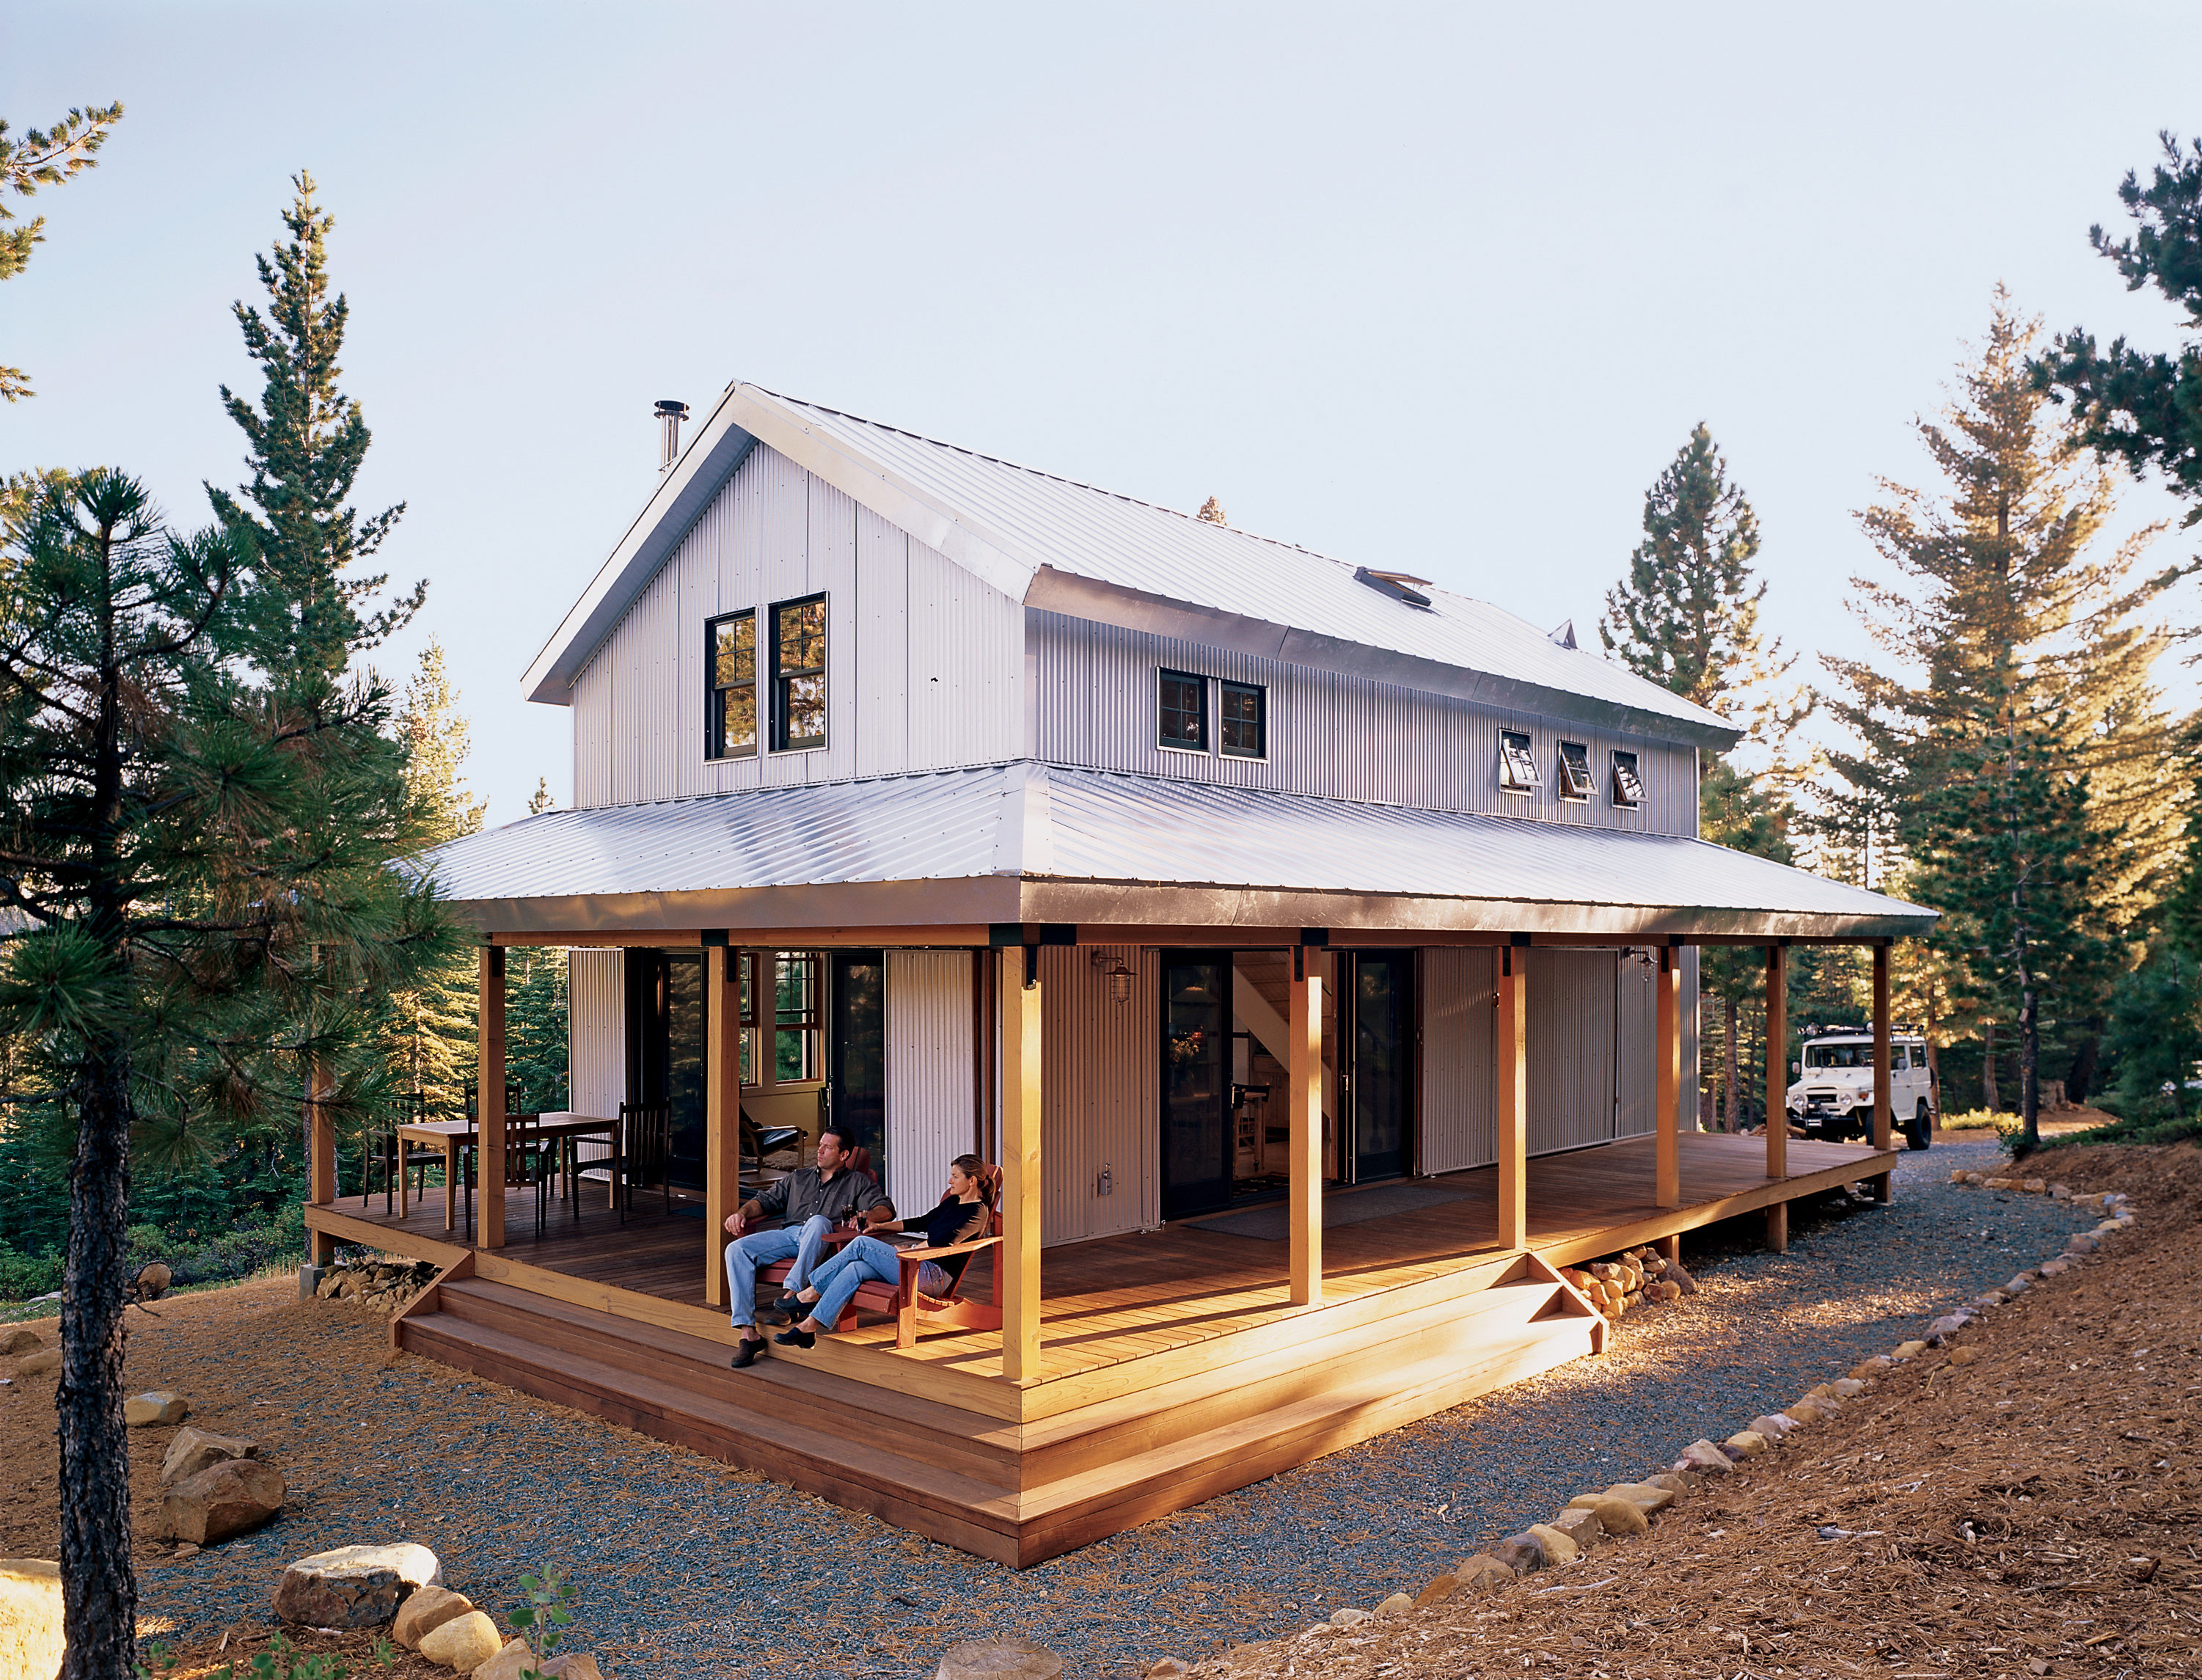 Off the grid and energy efficient sunset magazine - Cost of solar panels for 3 bedroom house ...